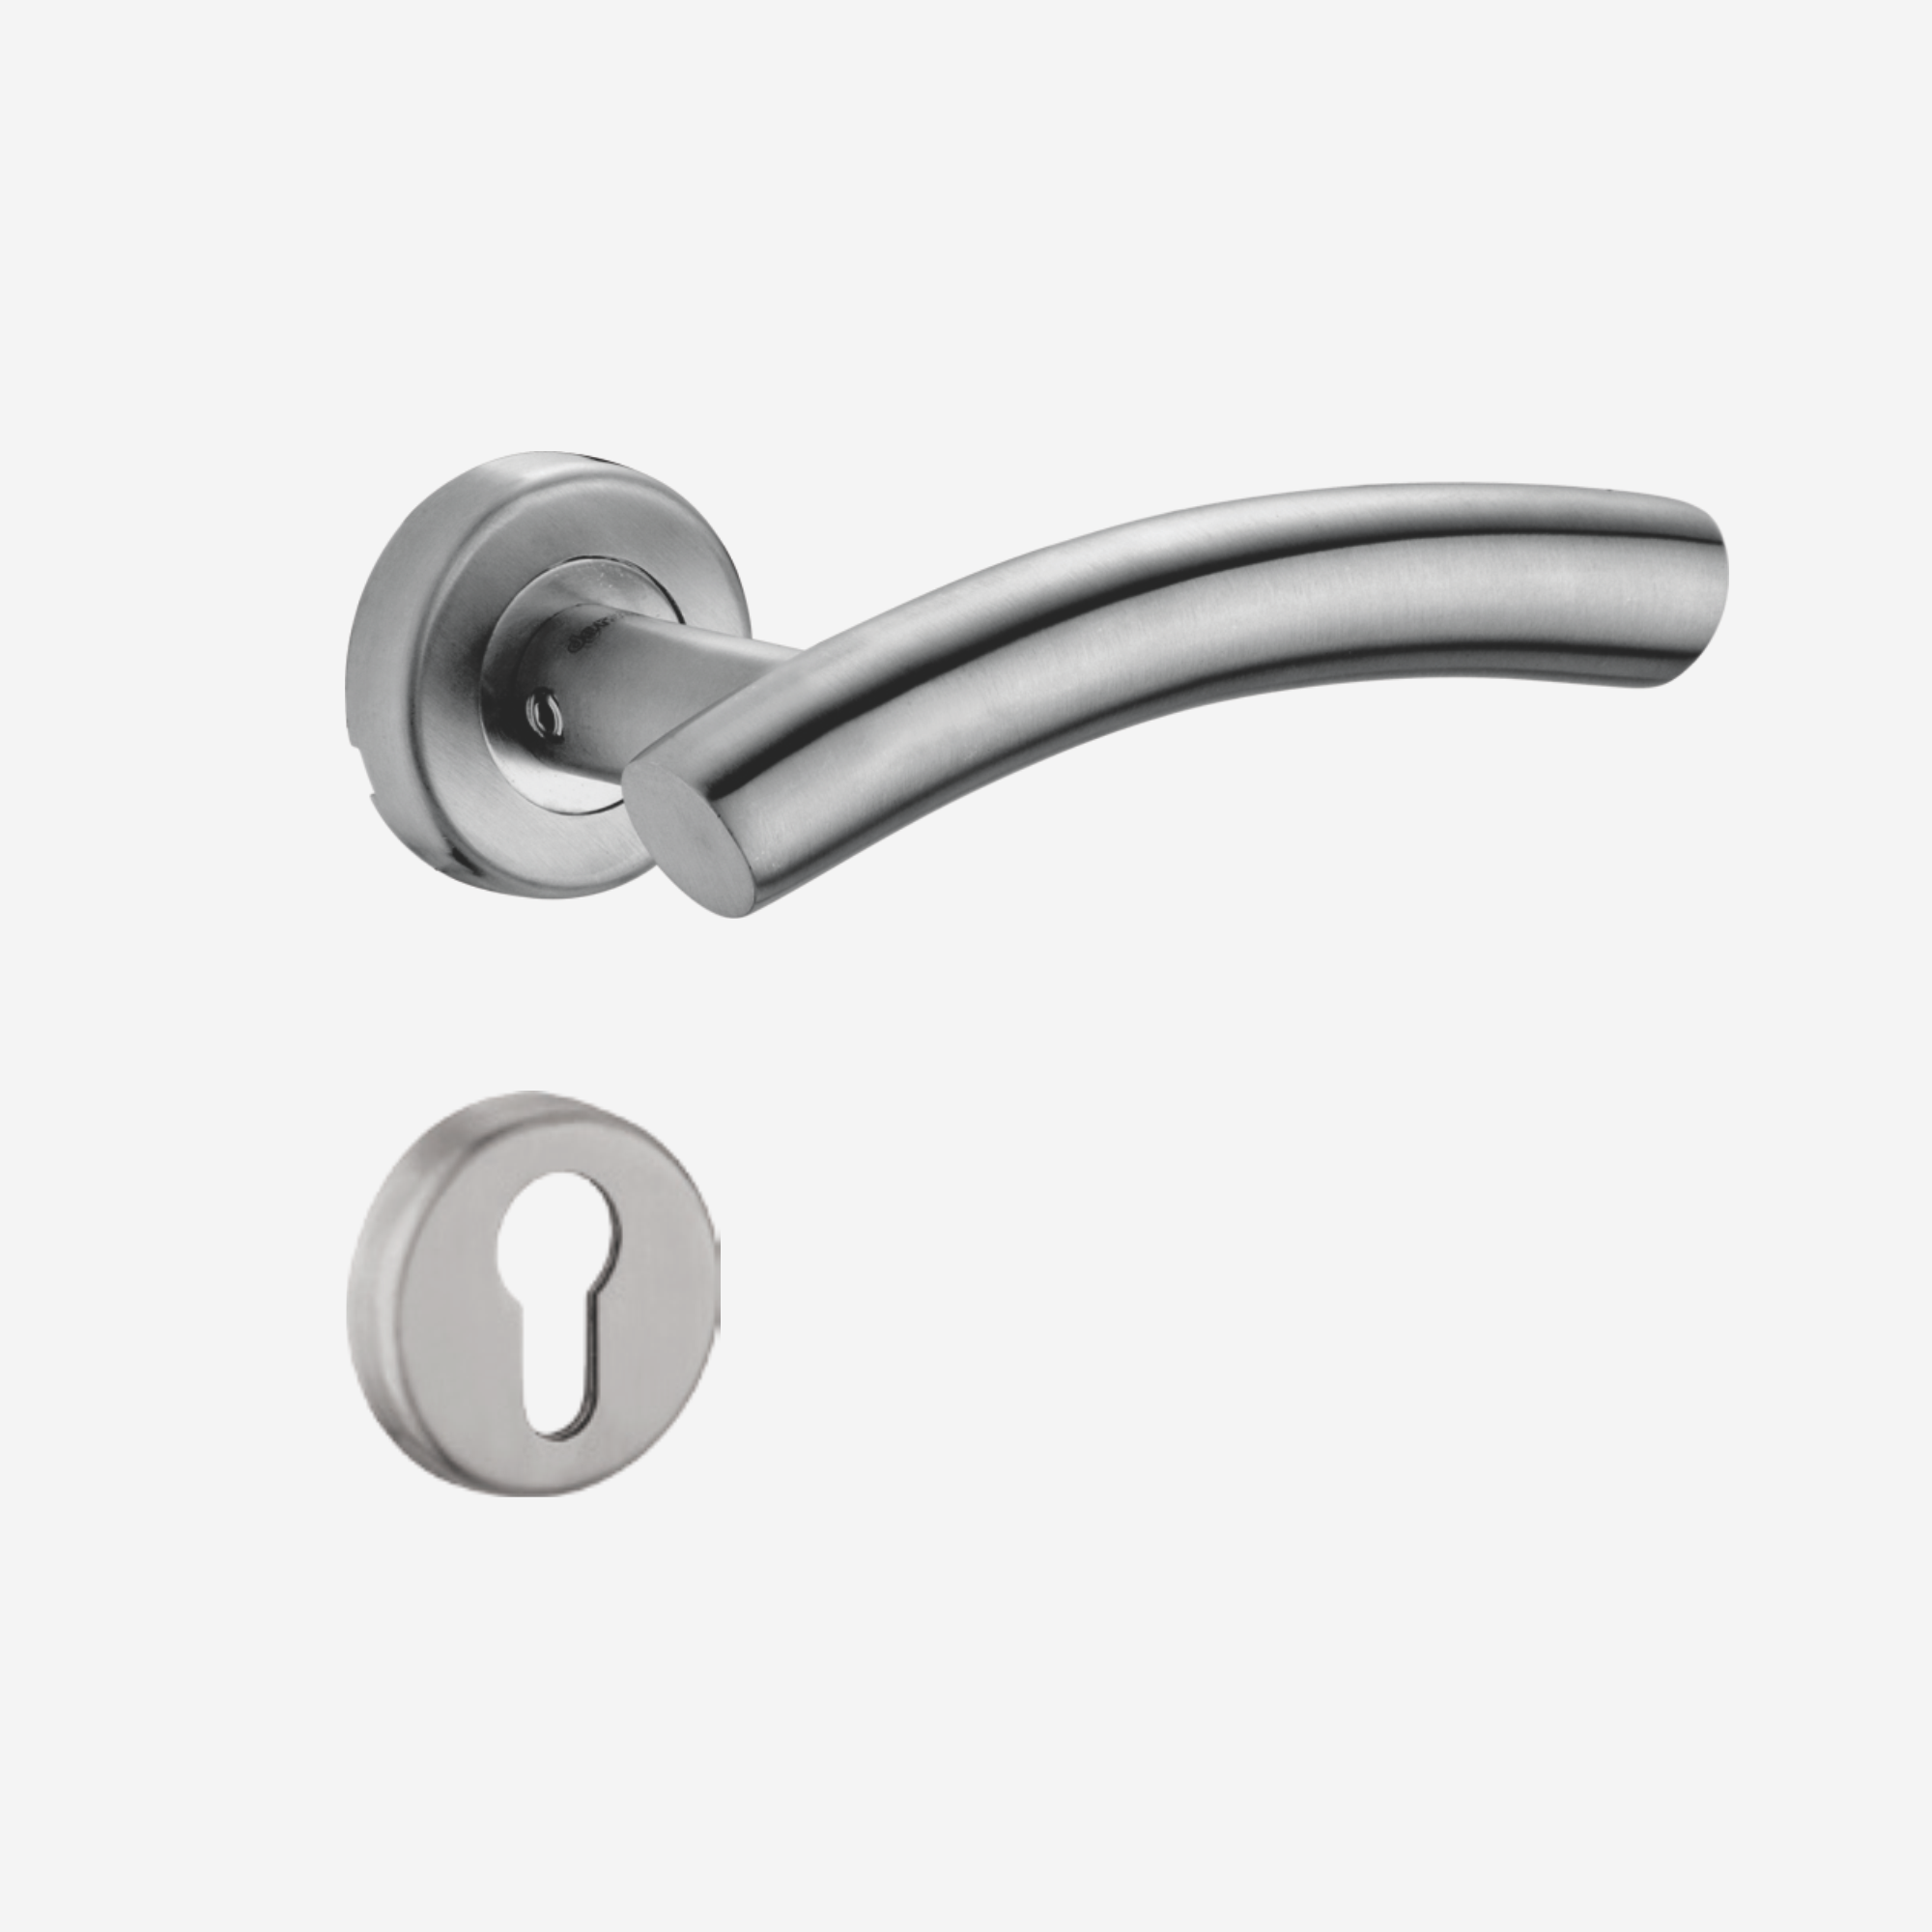 Dorset Lever handle for doors with lock _ cylinder - SC OR (SS)